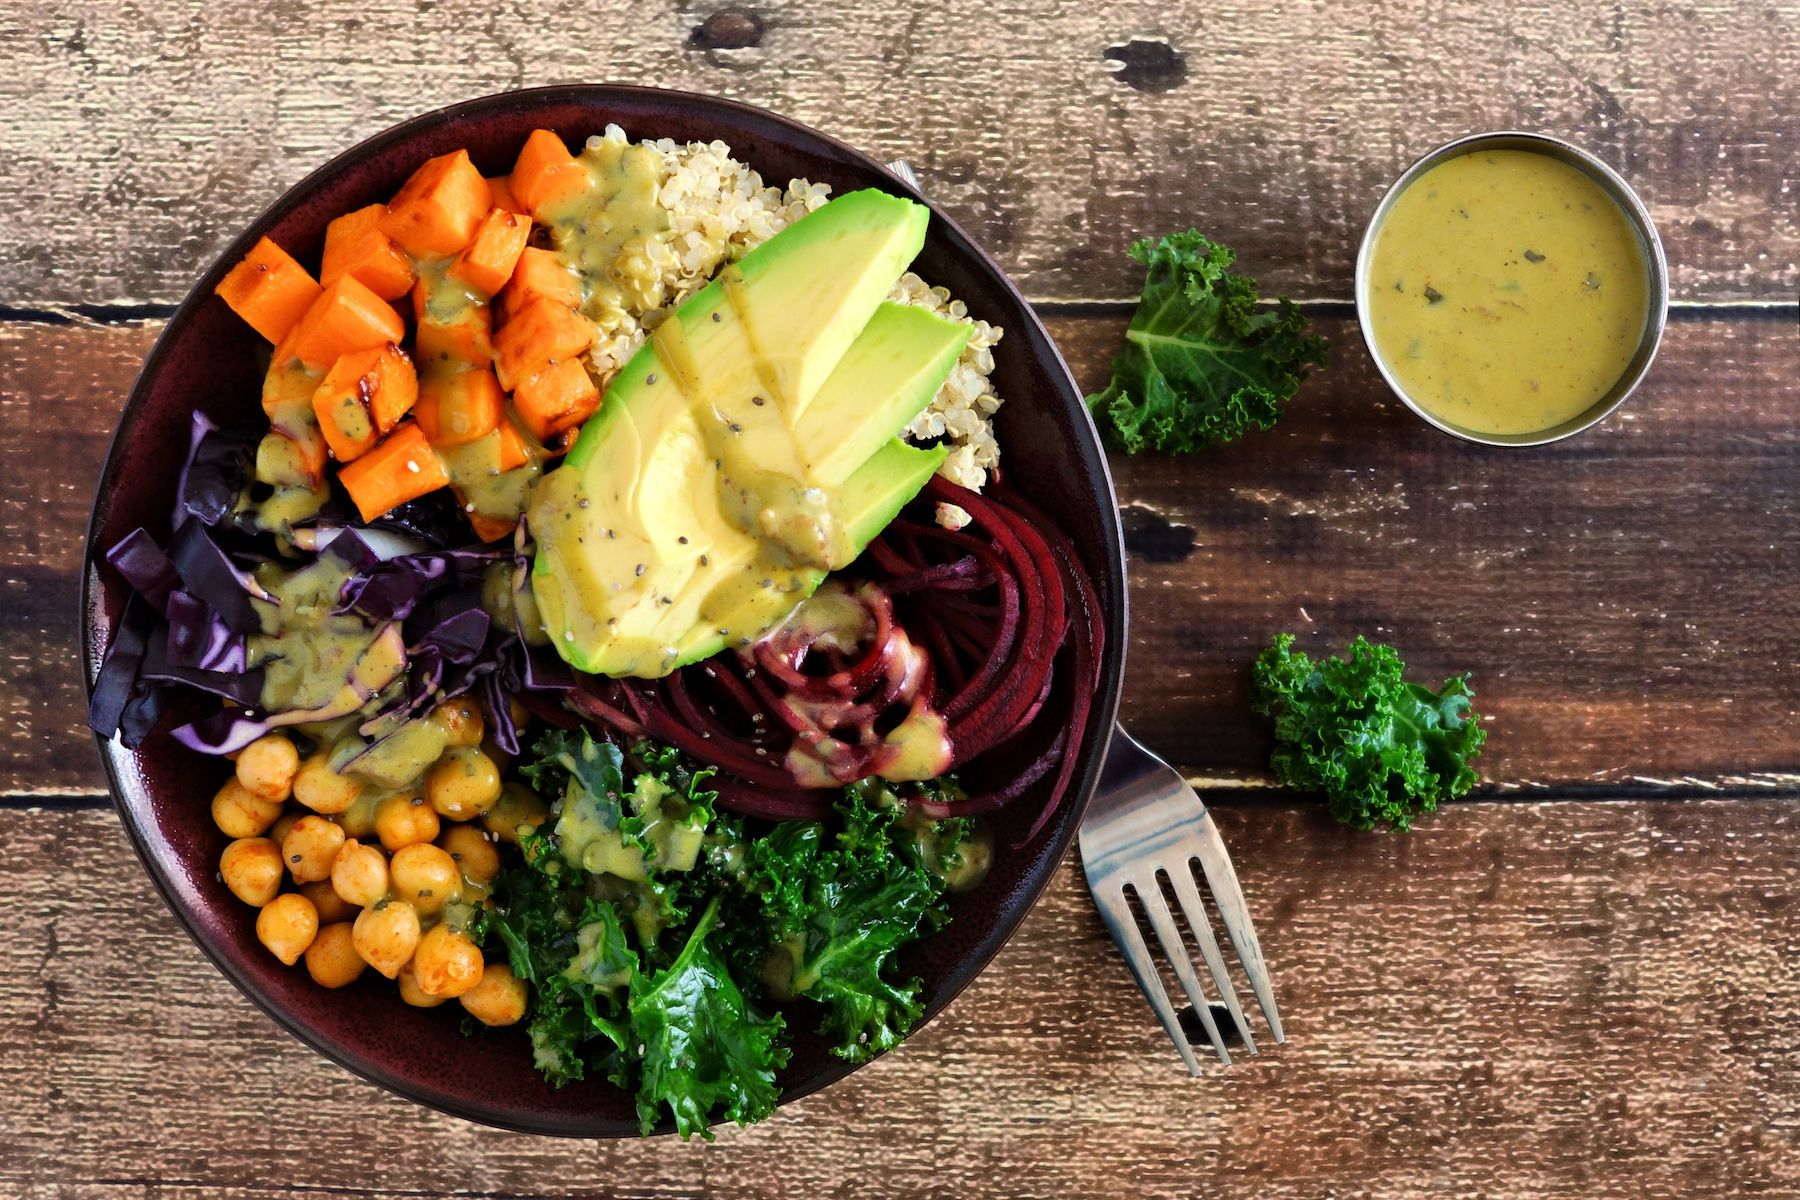 Buddha bowl with quinoa, avocado, chickpeas, vegetables on a wood background, Healthy food concept. Top view.